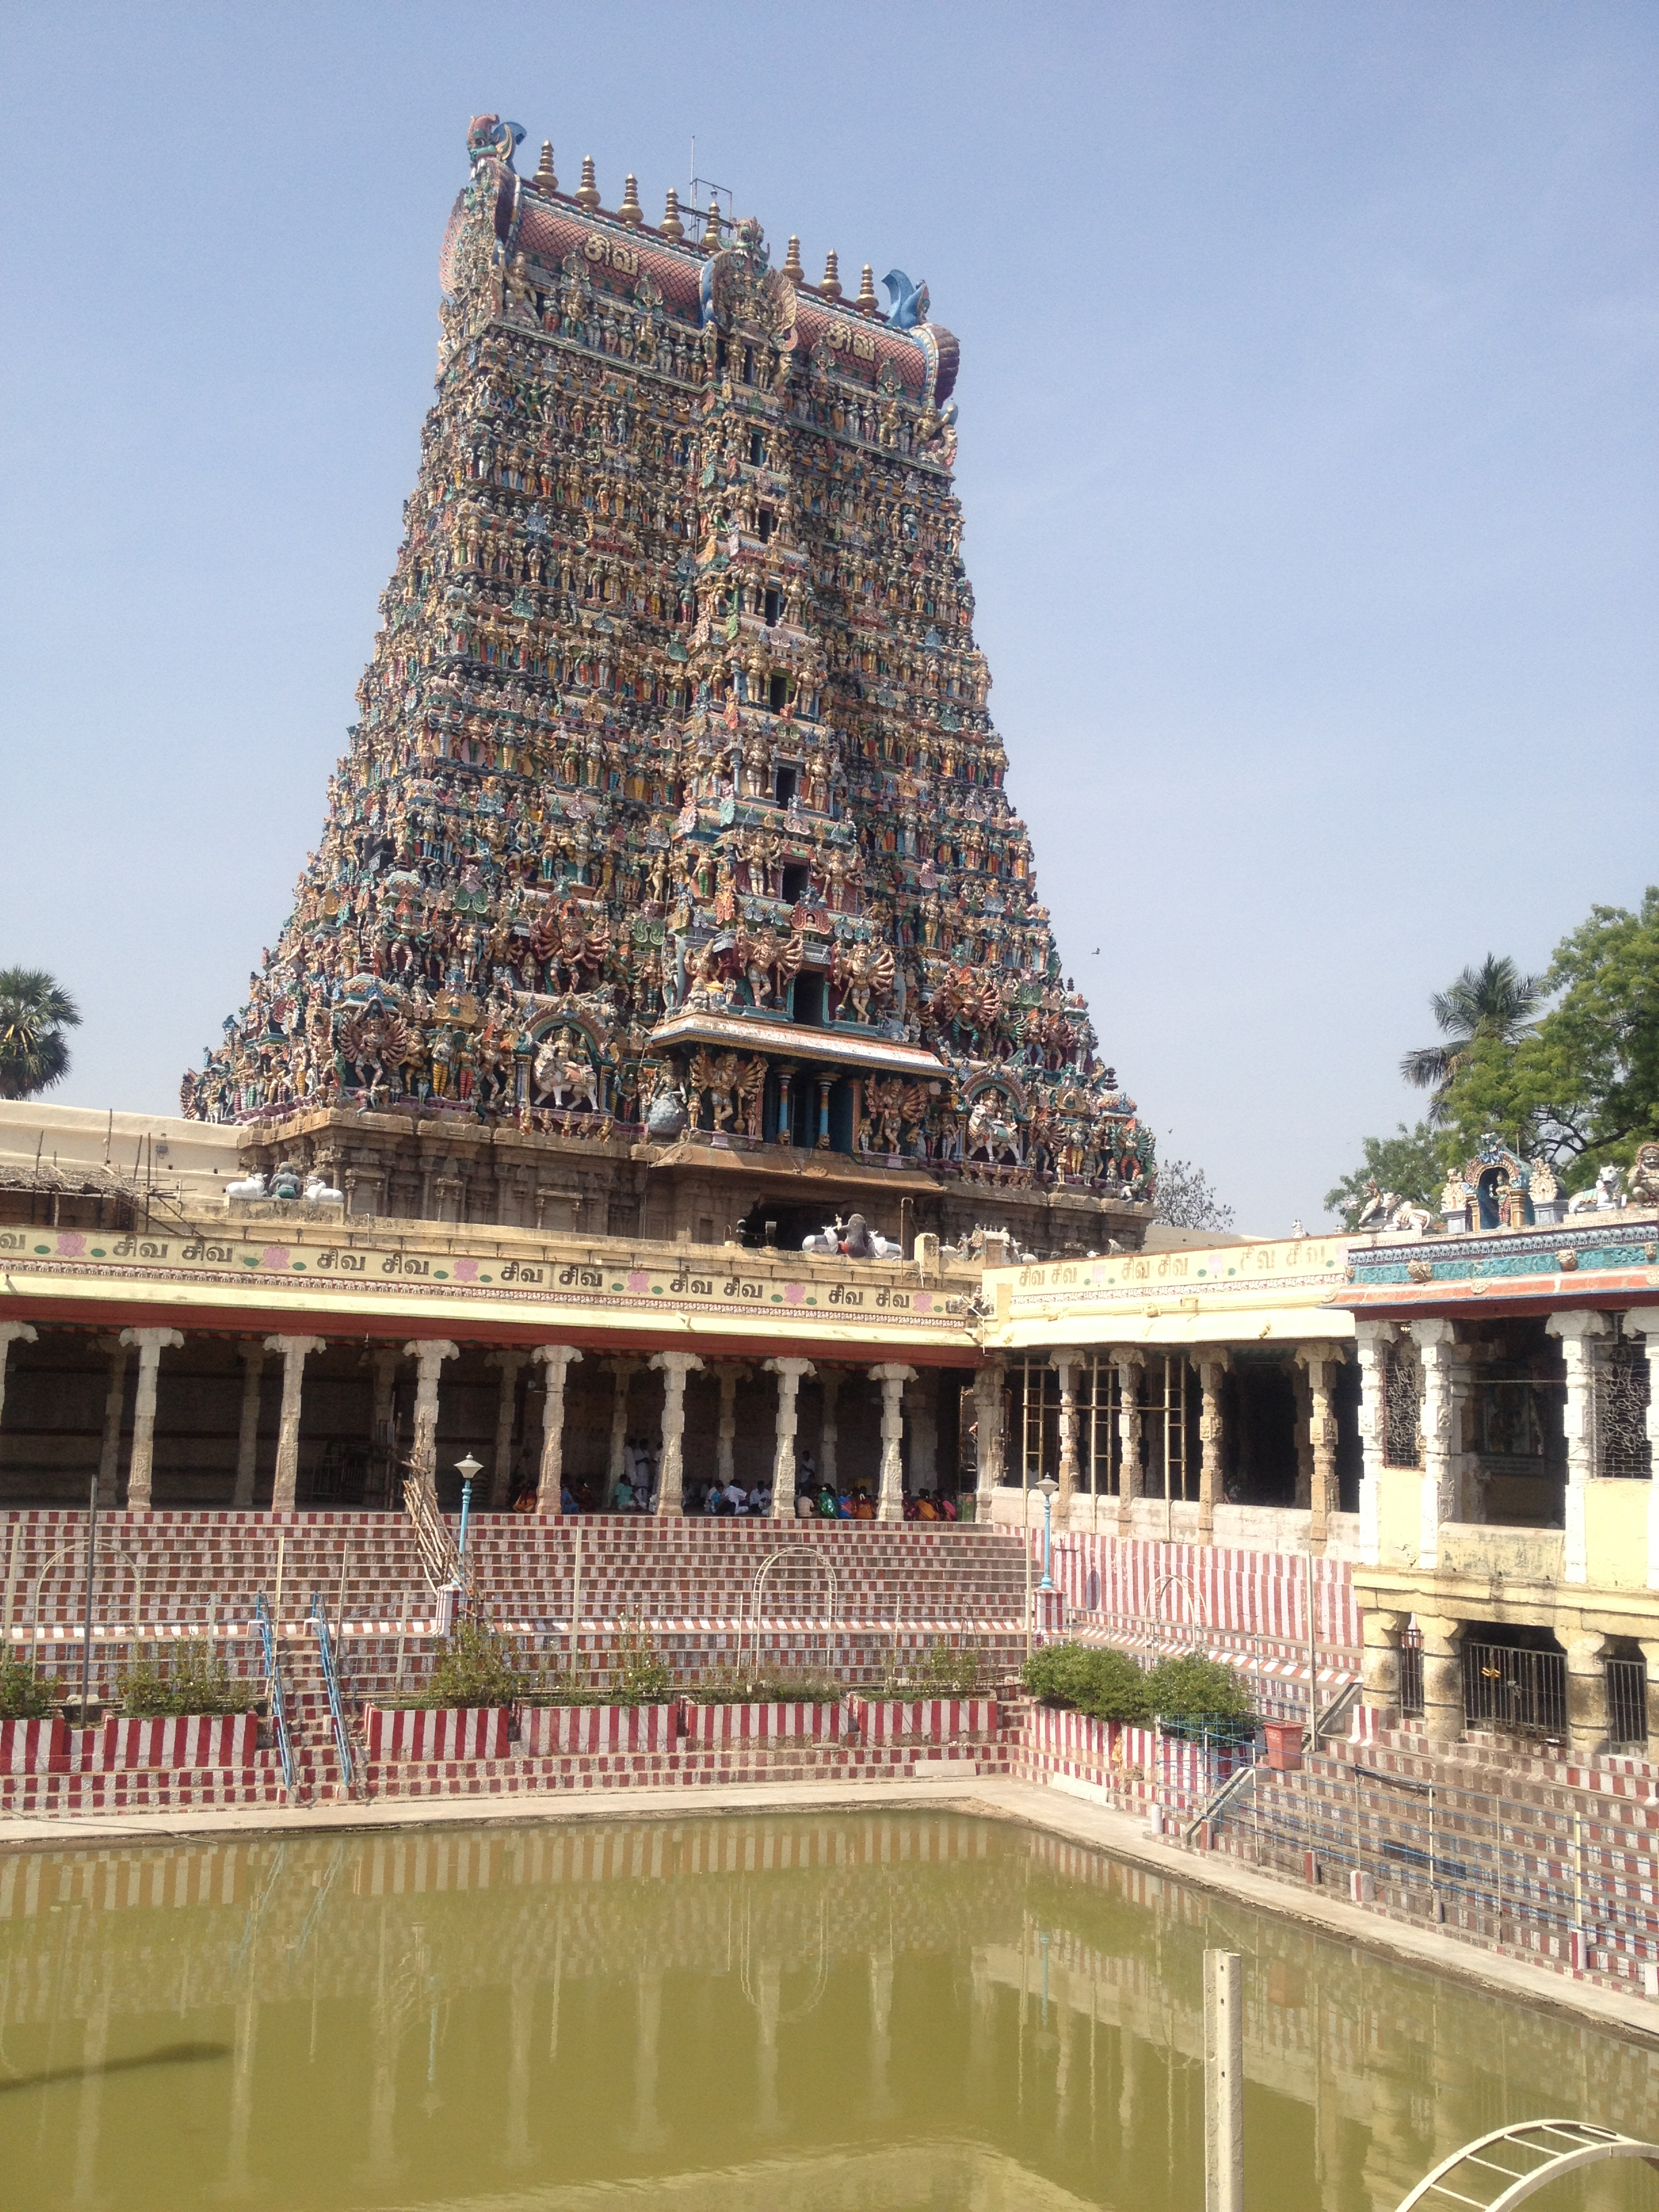 meenakshi temple The world renowned meenakshi sundareswarar temple popularly known as the madurai meenakshi temple dedicated to goddess parvathi and her consort shiva (called sundareswarar here) stands on the banks of the vaigai river in the 2500 year old temple.